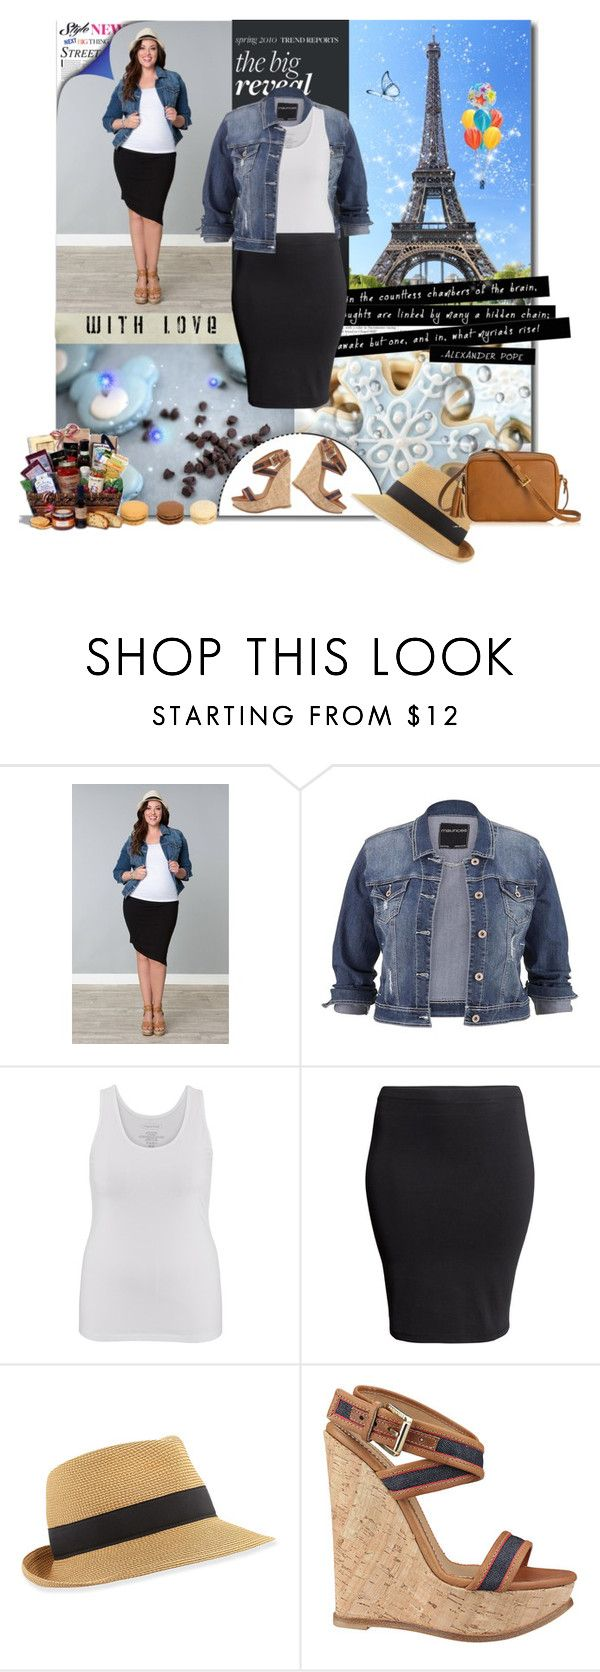 plus size by bouchra-re on Polyvore featuring mode, maurices, Kiyonna, H&M, Dsquared2, GiGi New York, Eric Javits, SAN LORENZO and plus size clothing